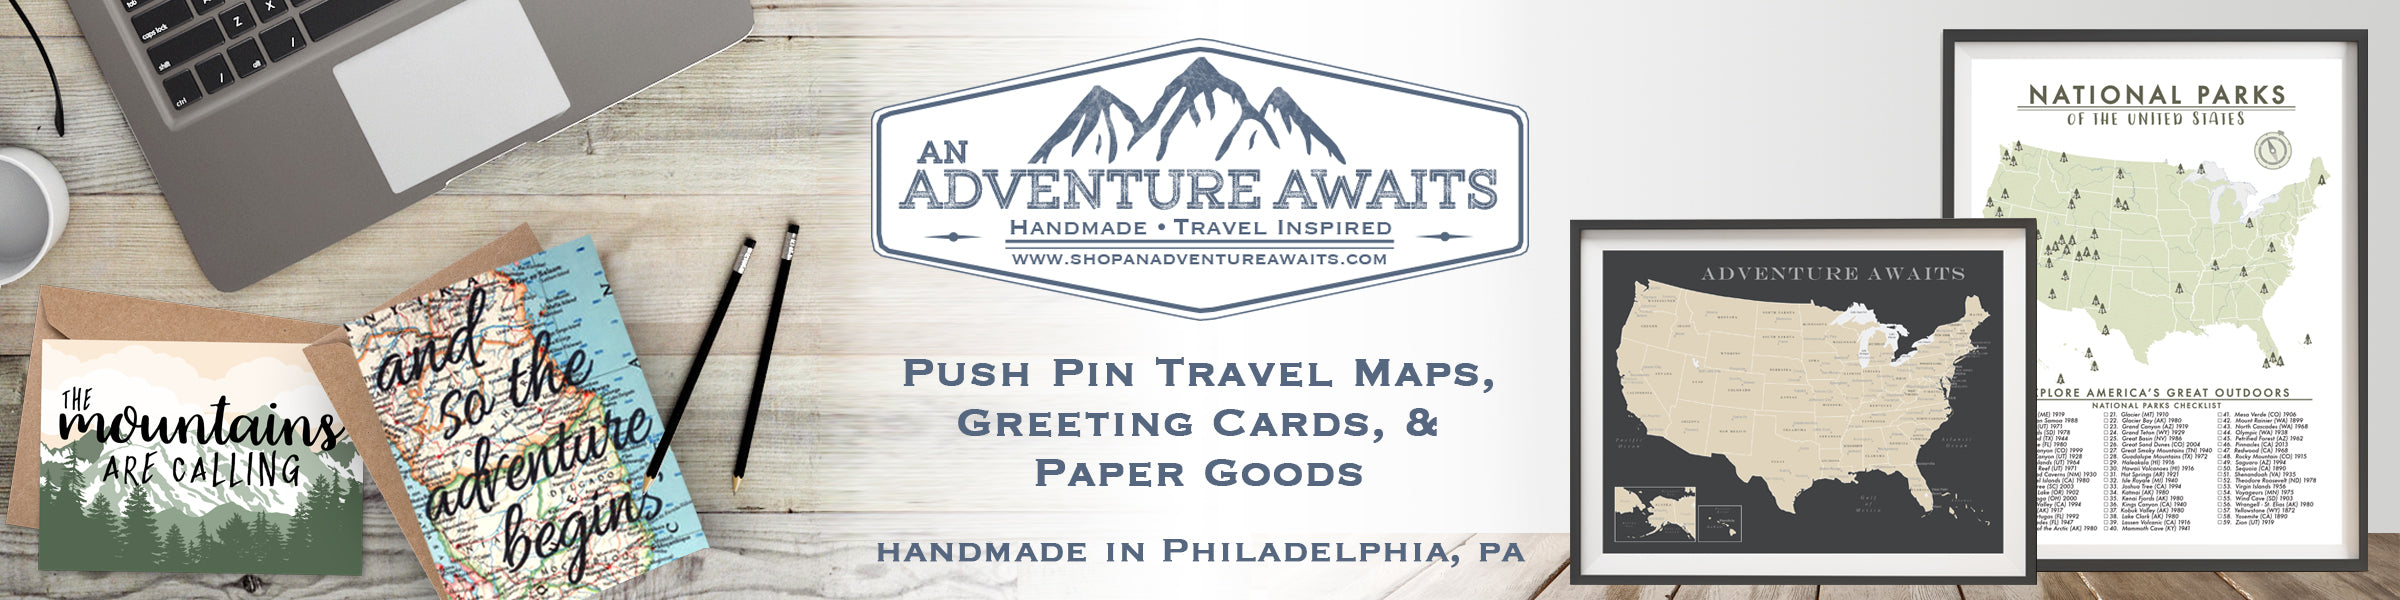 An Adventure Awaits, LLC